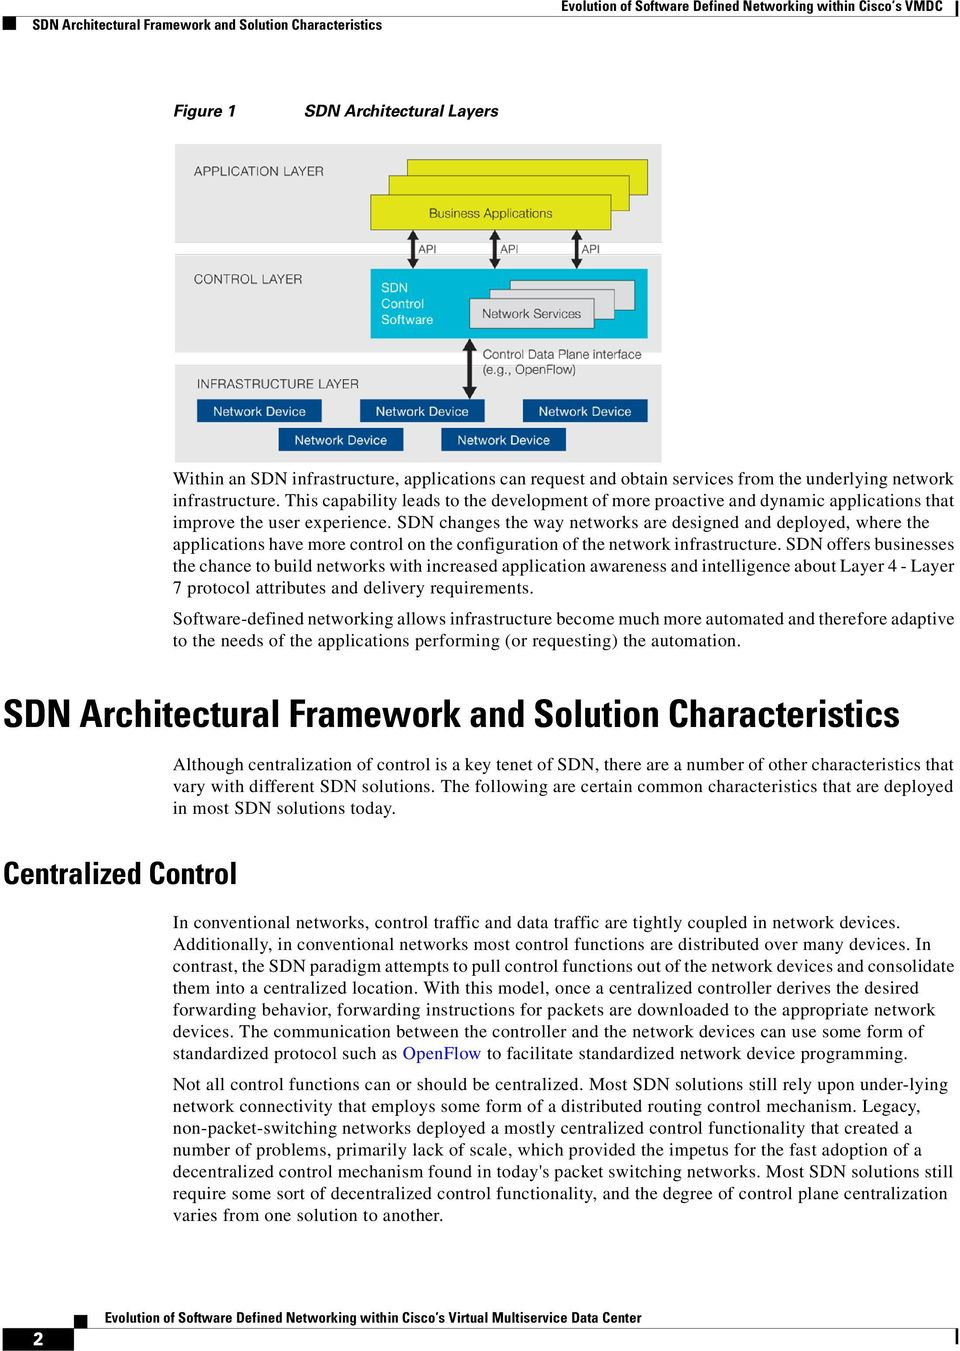 SDN changes the way networks are designed and deployed, where the applications have more control on the configuration of the network infrastructure.